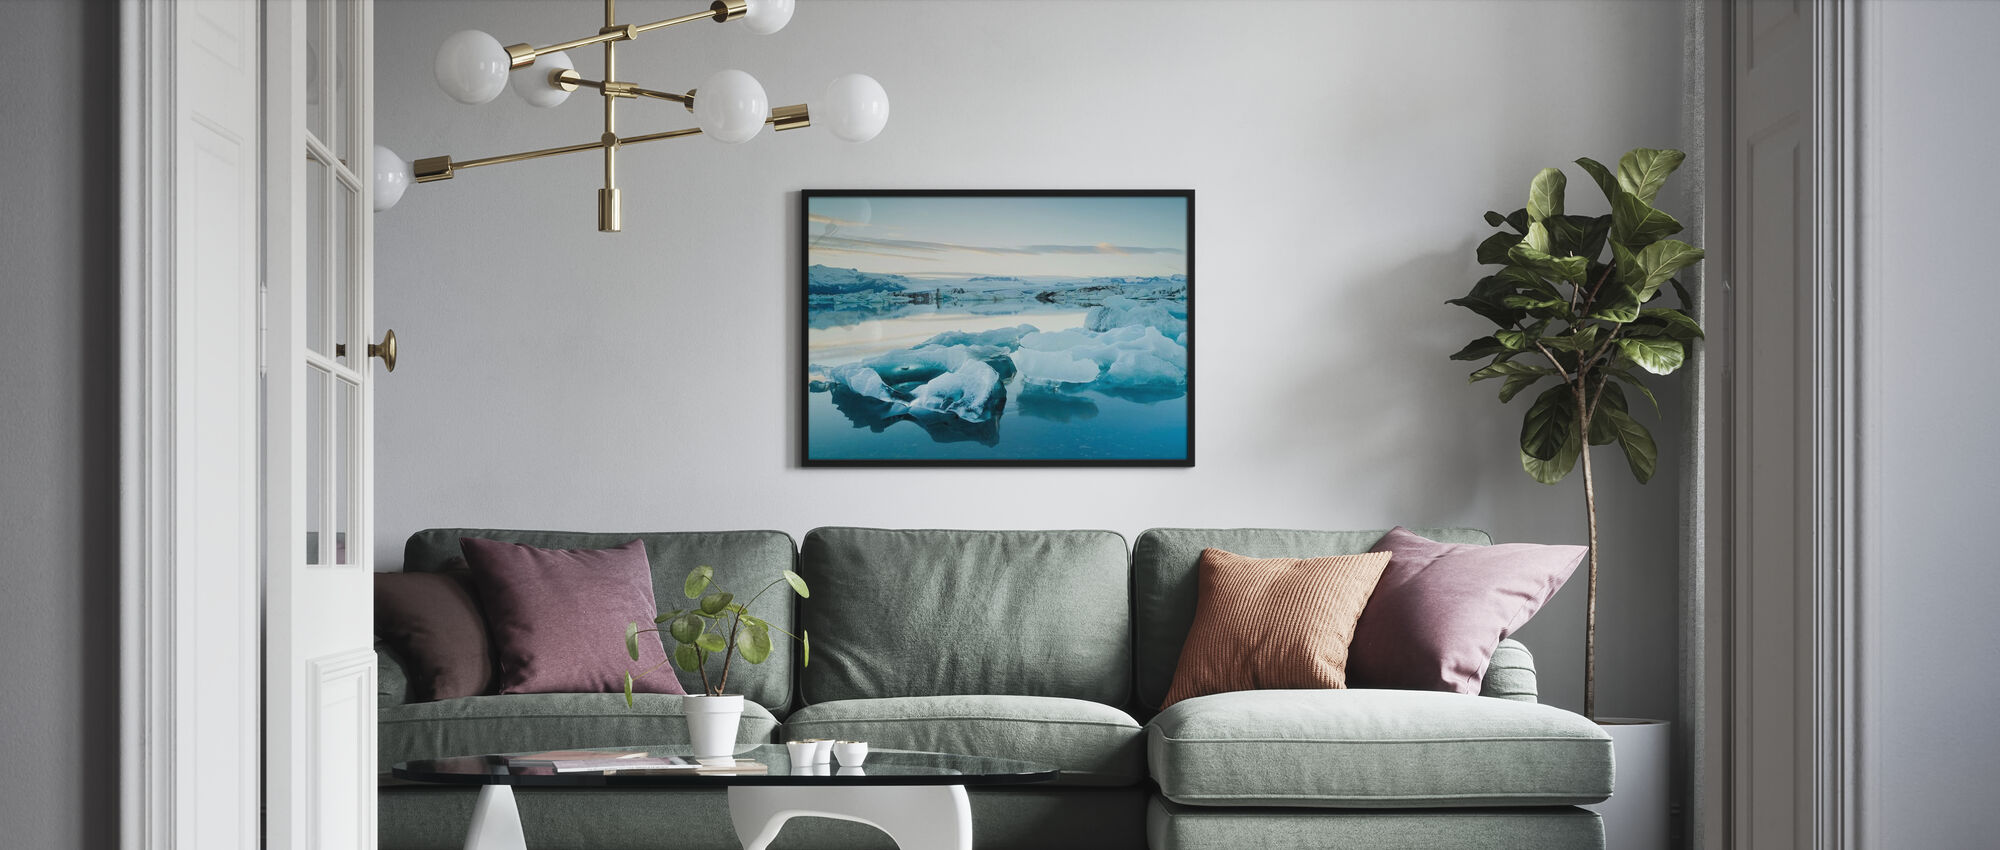 Sculptural Ice - Poster - Living Room